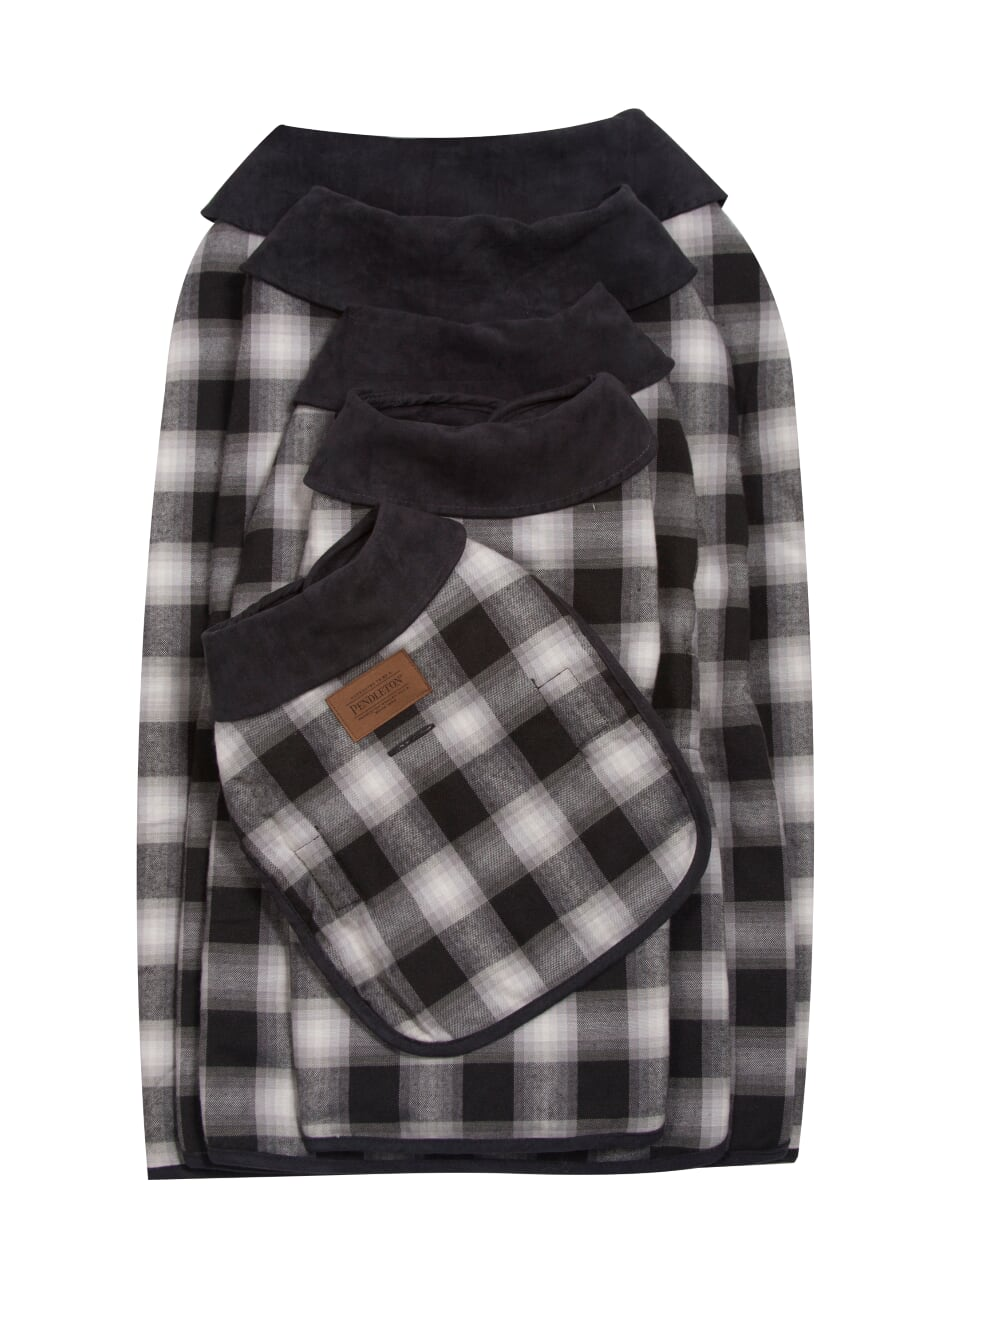 Pendleton Charcoal Ombre Plaid Reversible Dog Coat